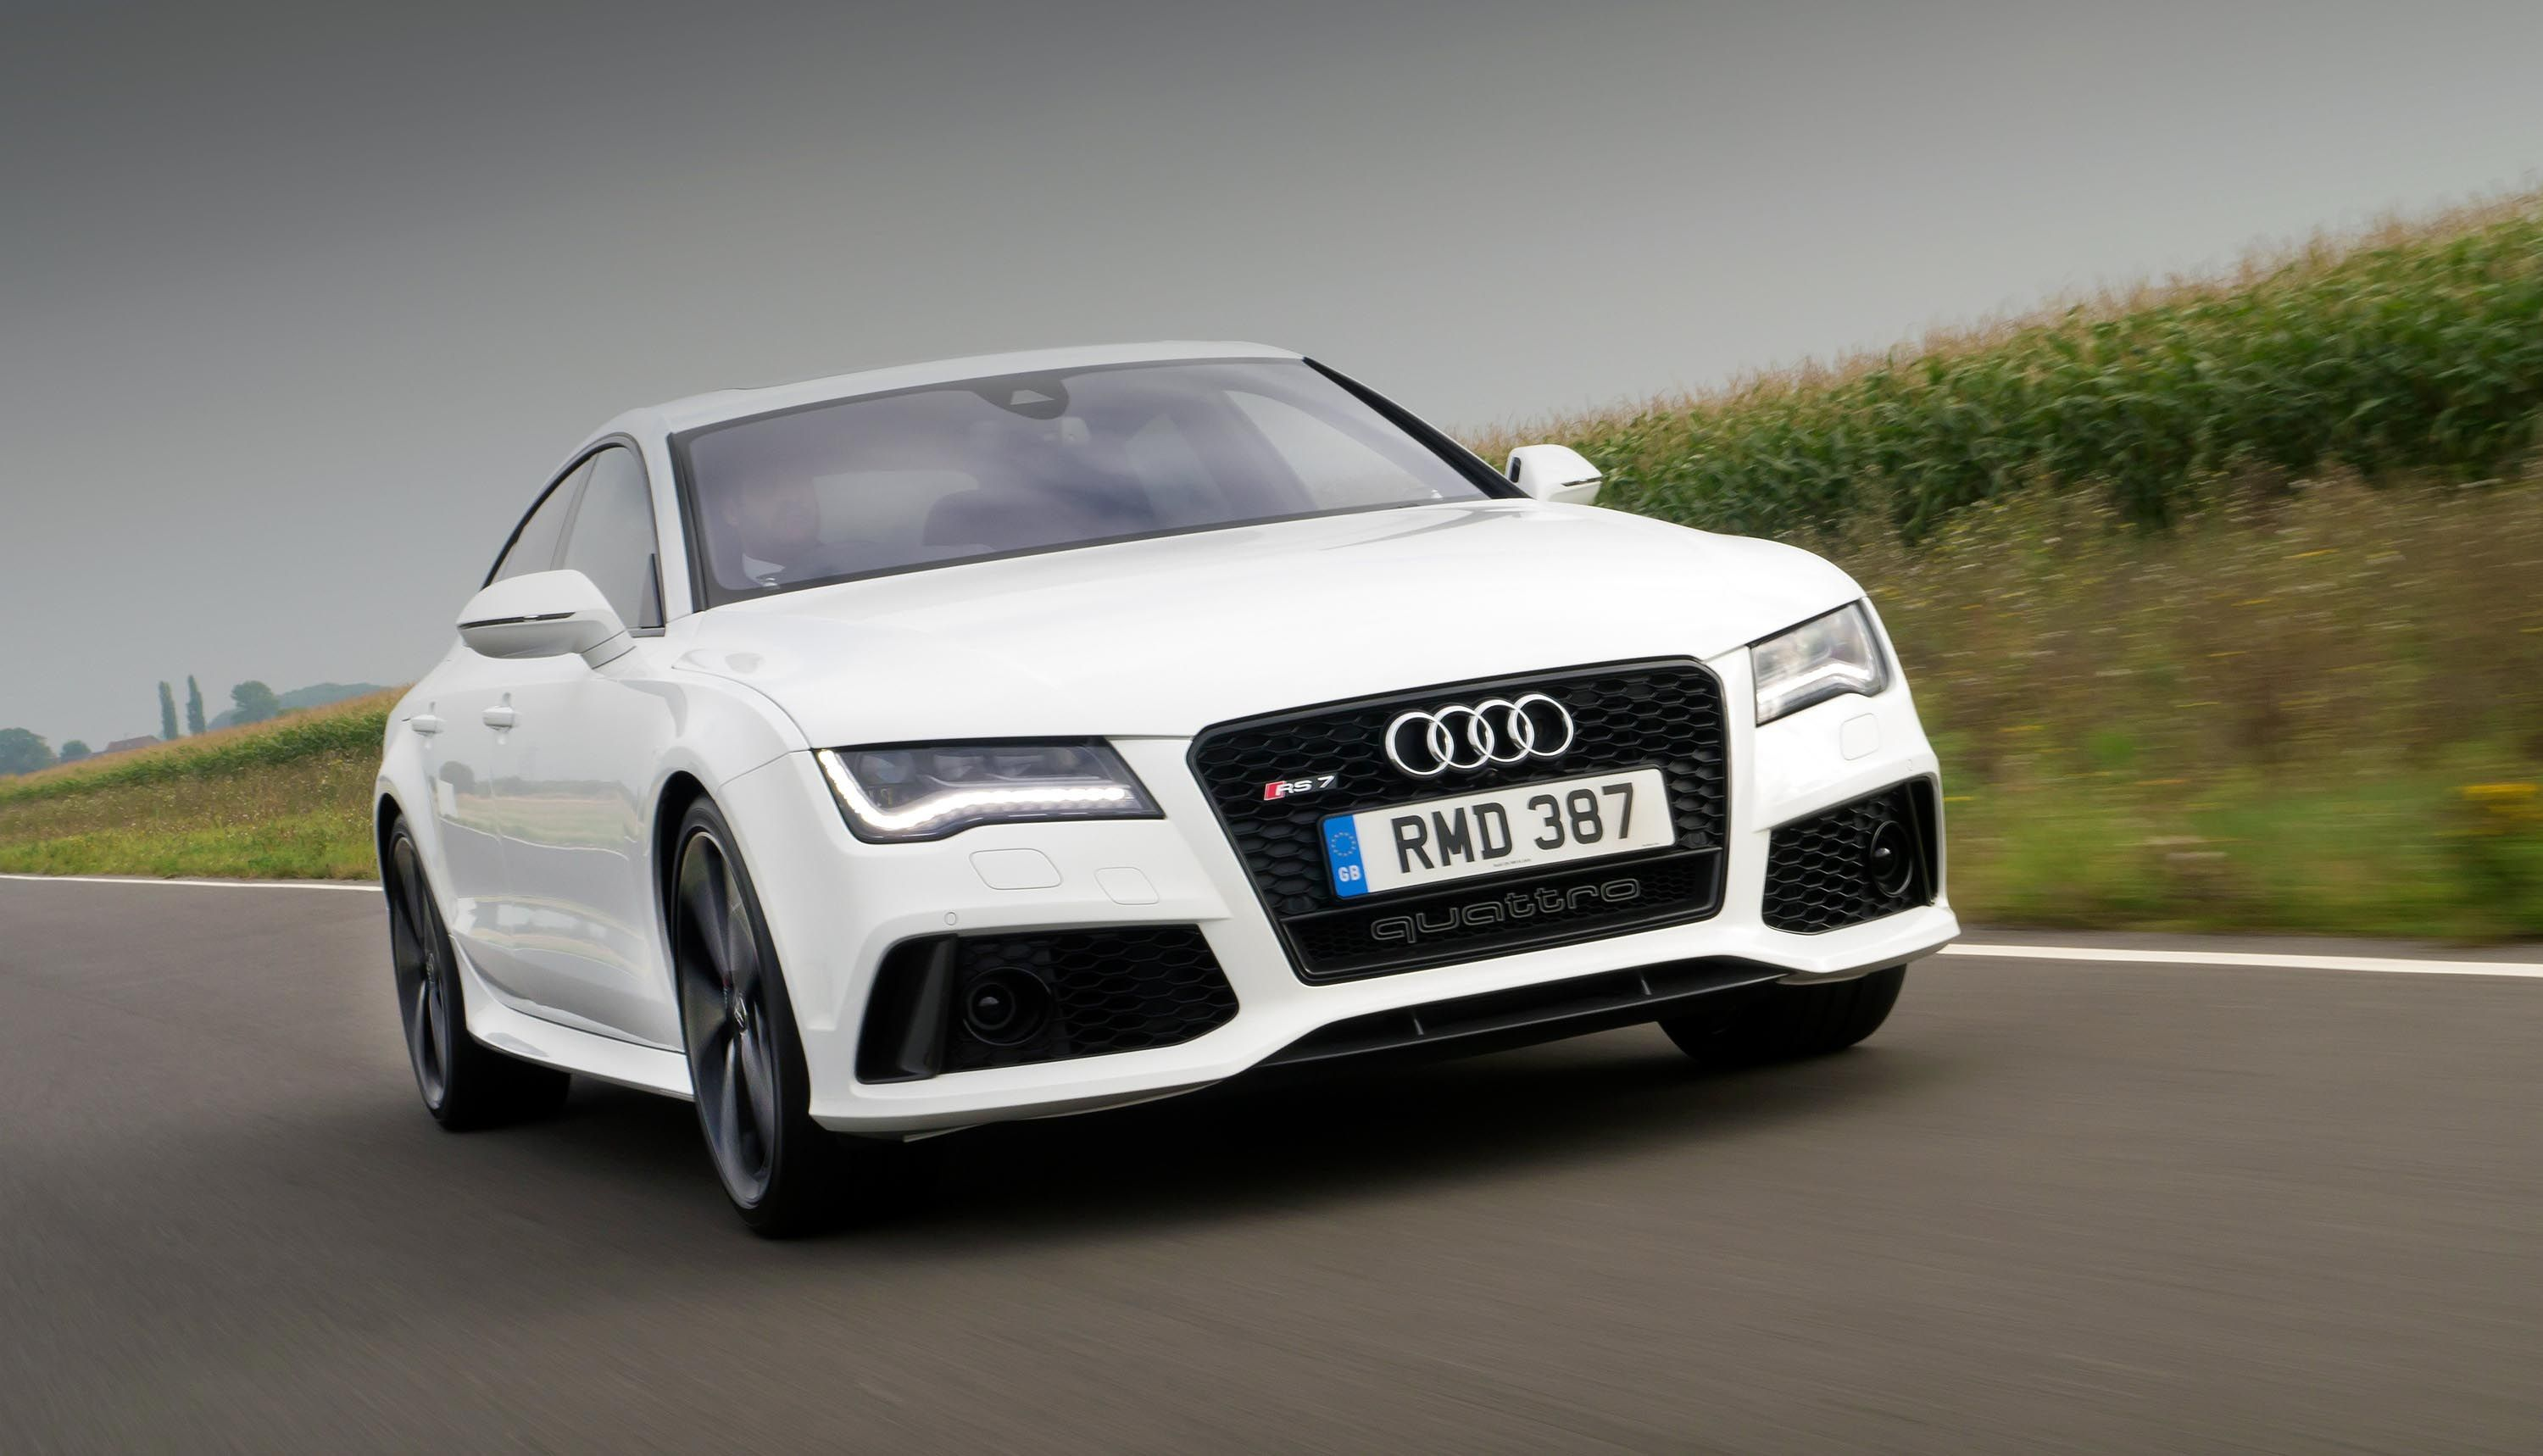 We drive the awesome new Audi RS7 560bhp, 700Nm of